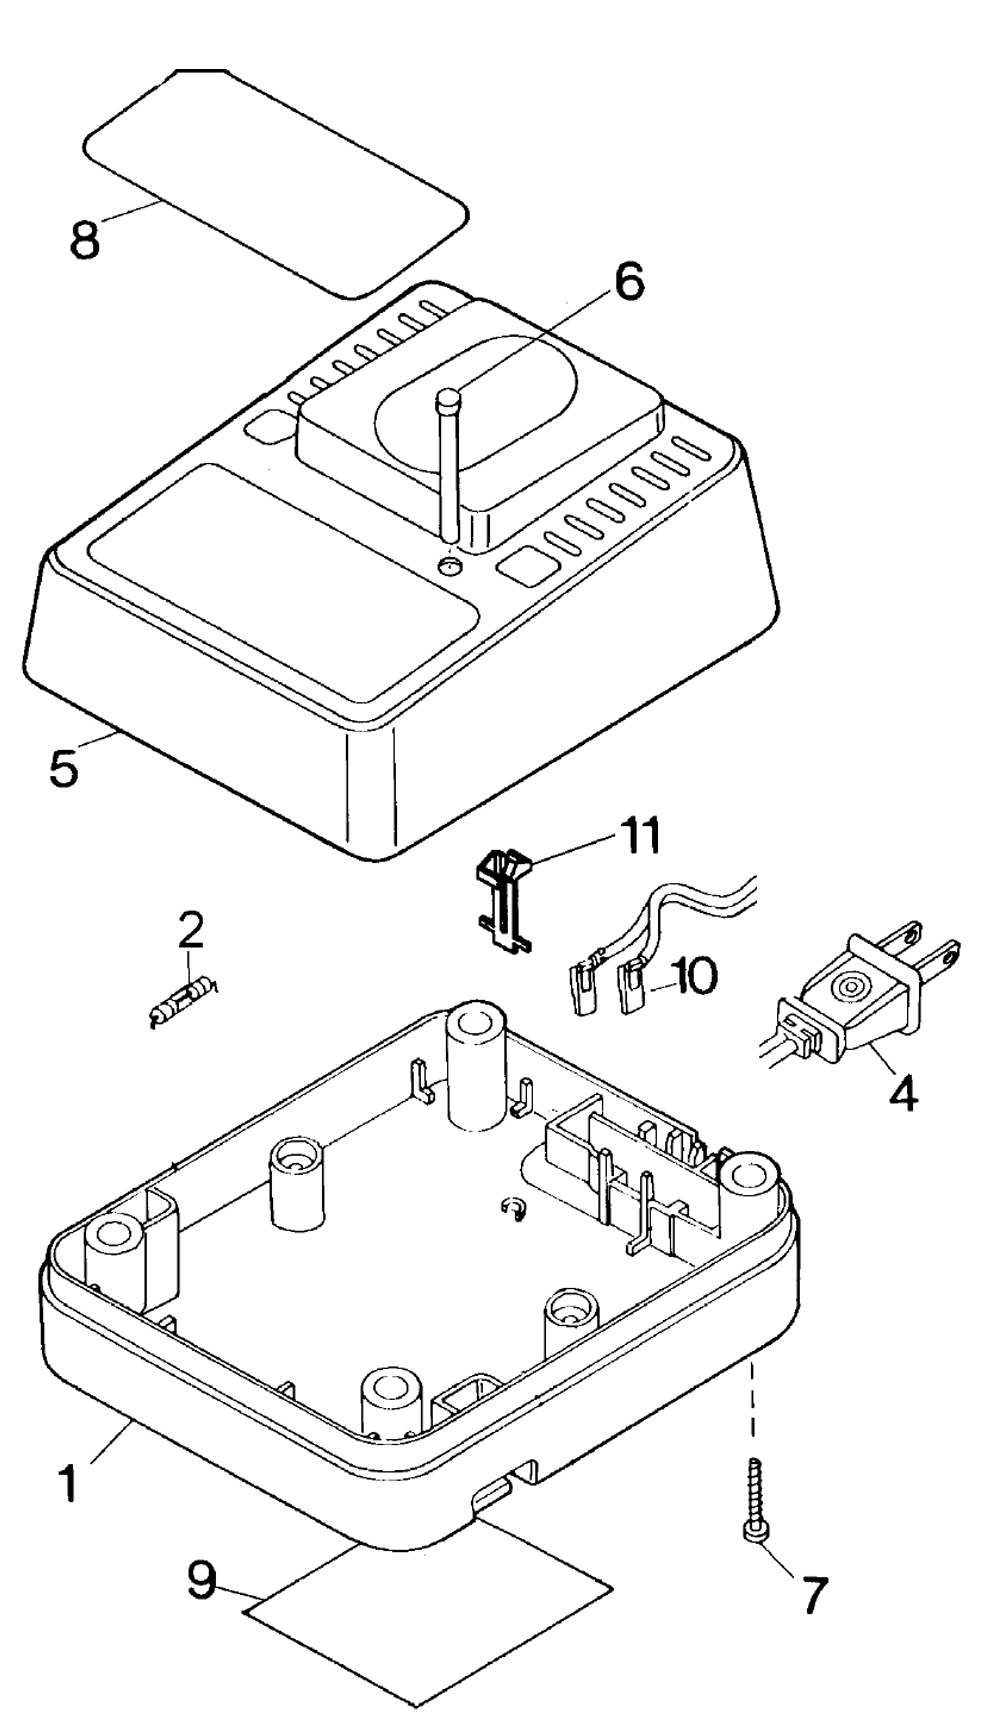 Hitachi Miter Saw Parts Diagram moreover Schematic Diagram On Milwaukee Battery Charger furthermore Triumph Engine Diagram as well Milwaukee 0616 20  a02a  Parts in addition Roper Refrigerator Freezer Manual. on 12 volt drill parts